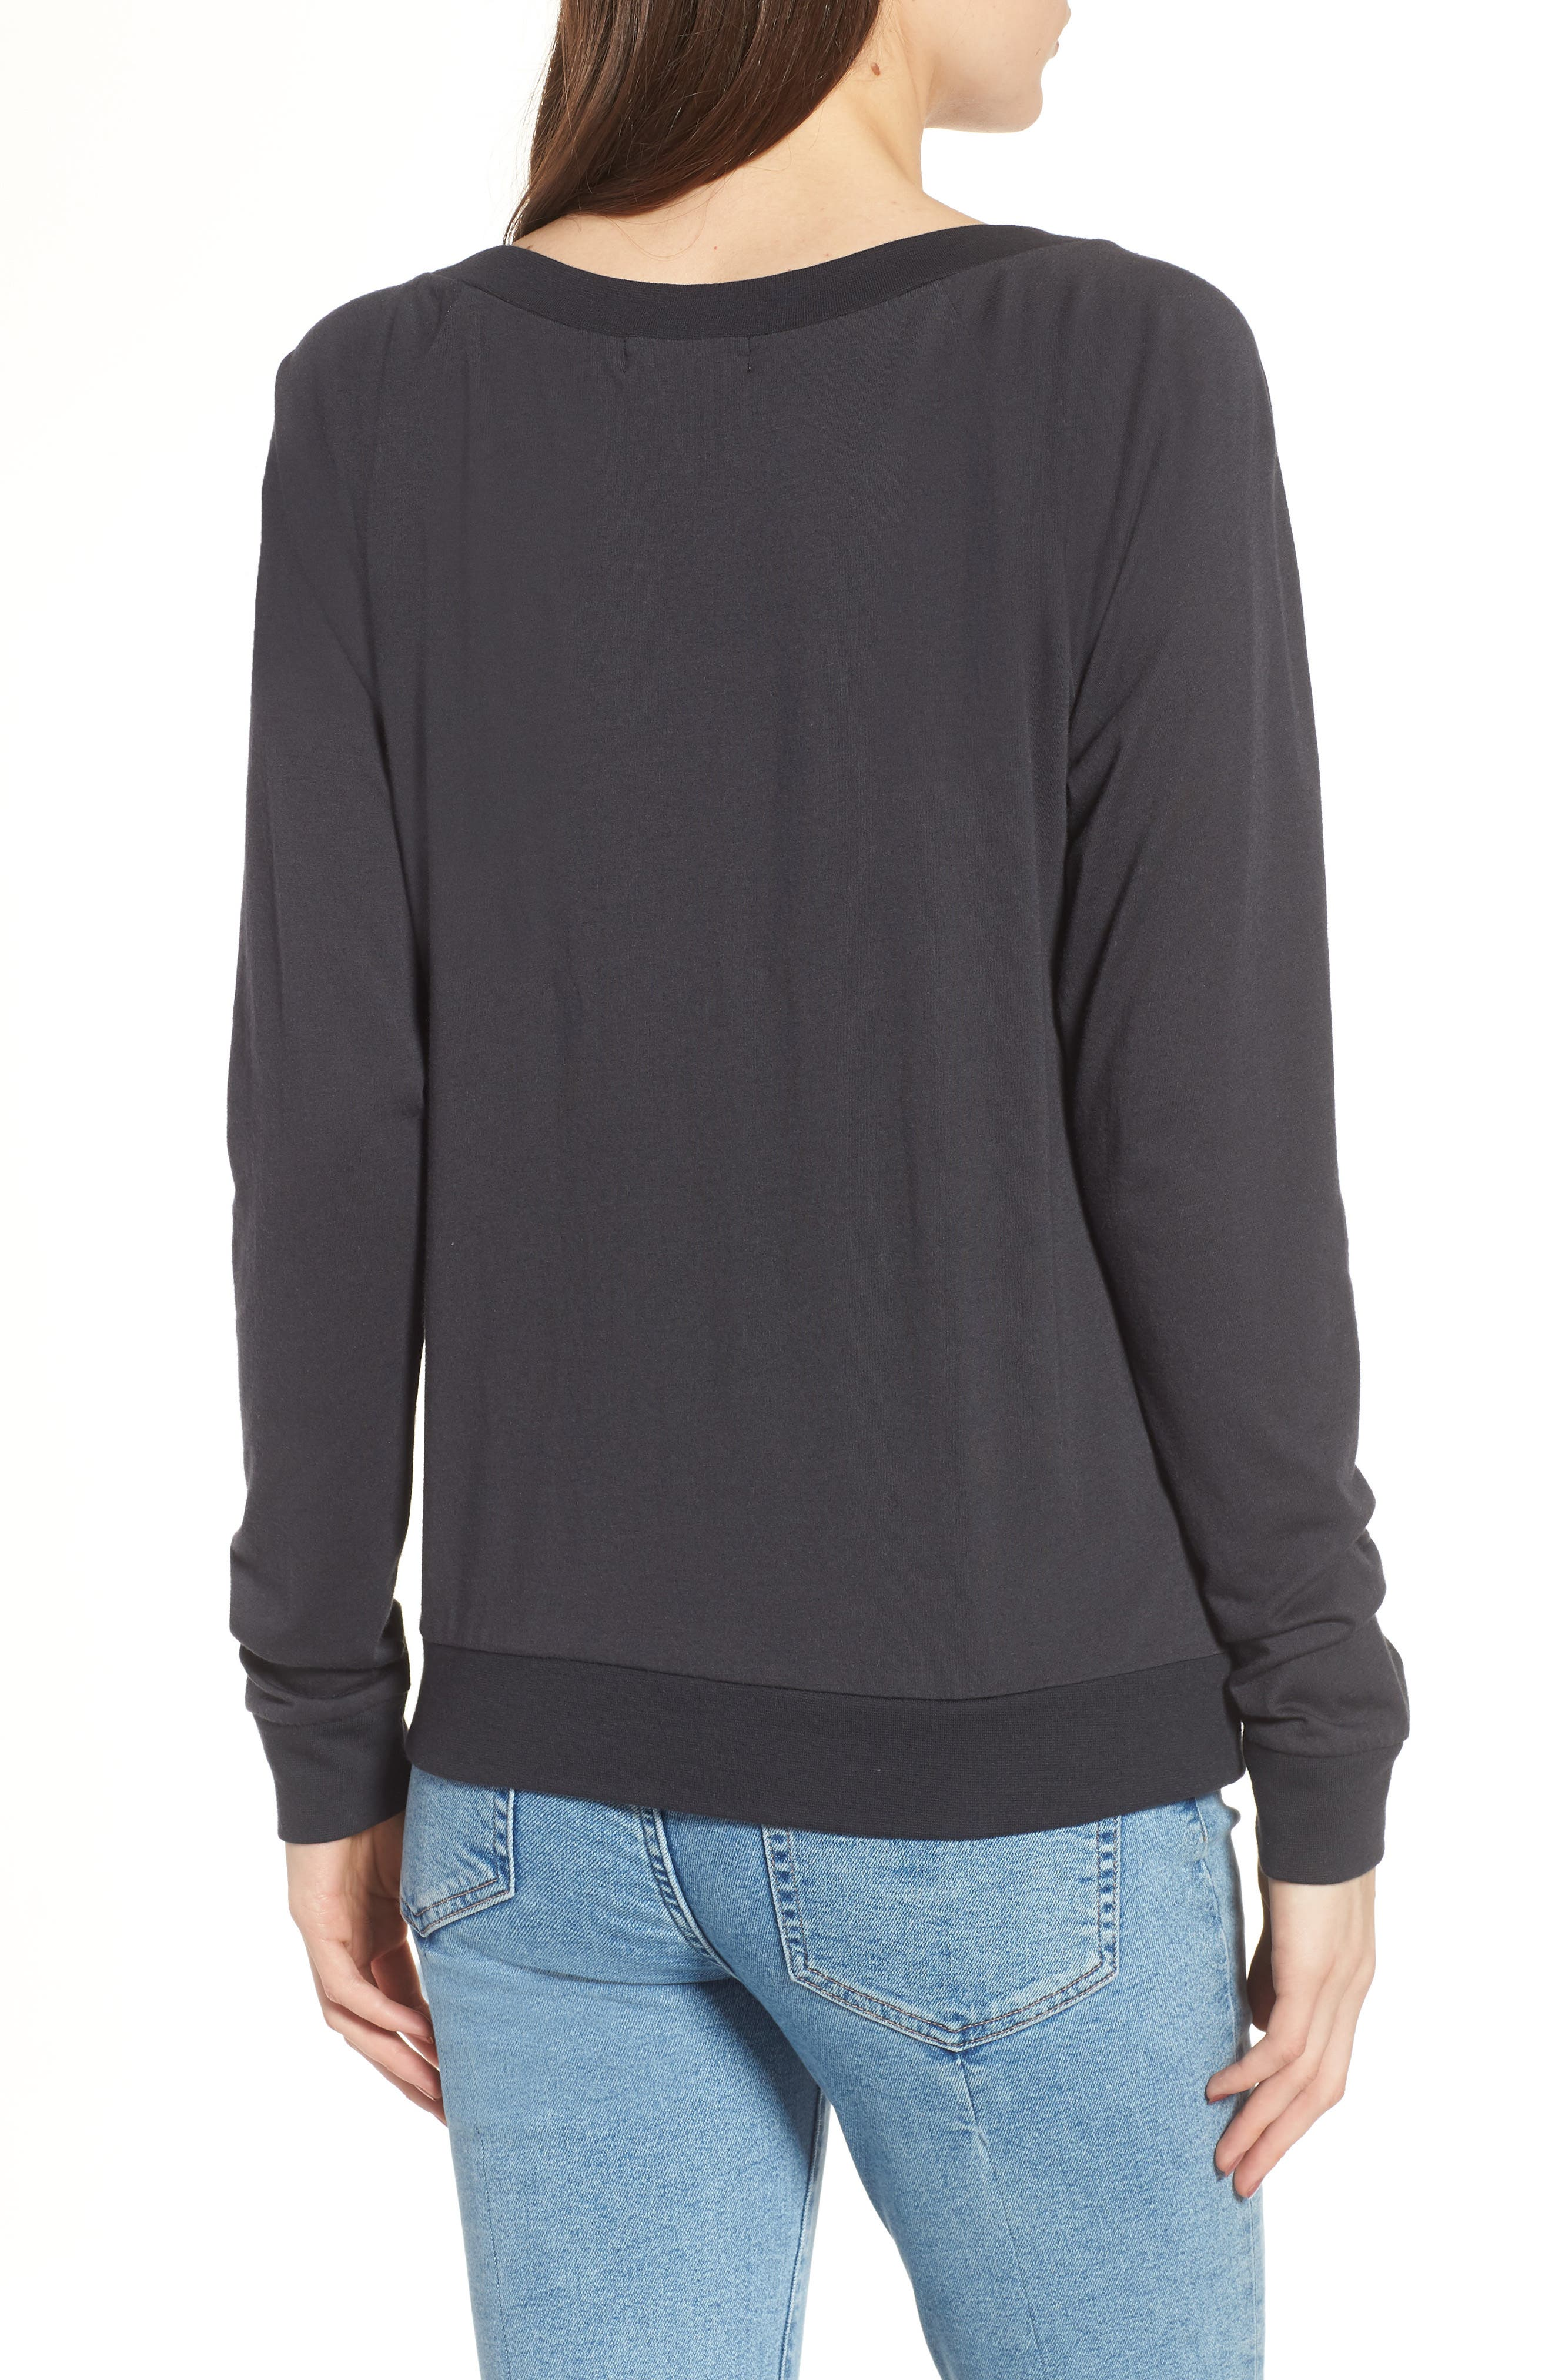 Candy - Vacation Pullover,                             Alternate thumbnail 2, color,                             Black